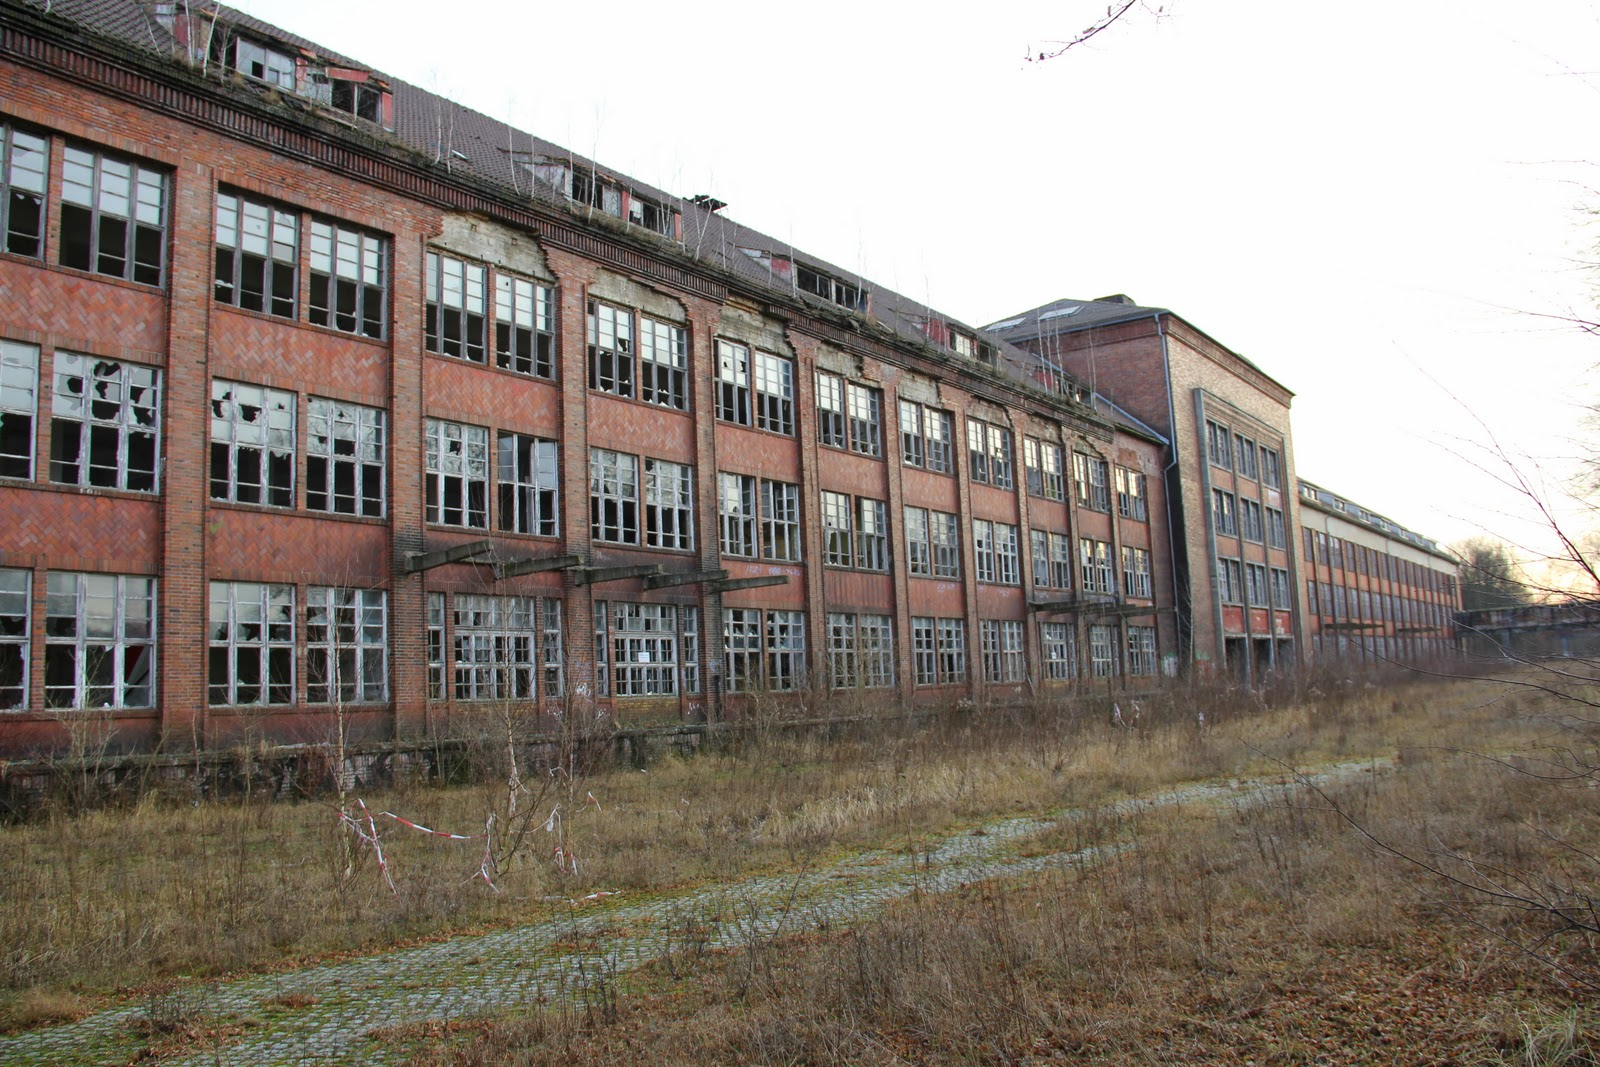 154 best abandoned soviet buildings images on pinterest abandoned russia and english language